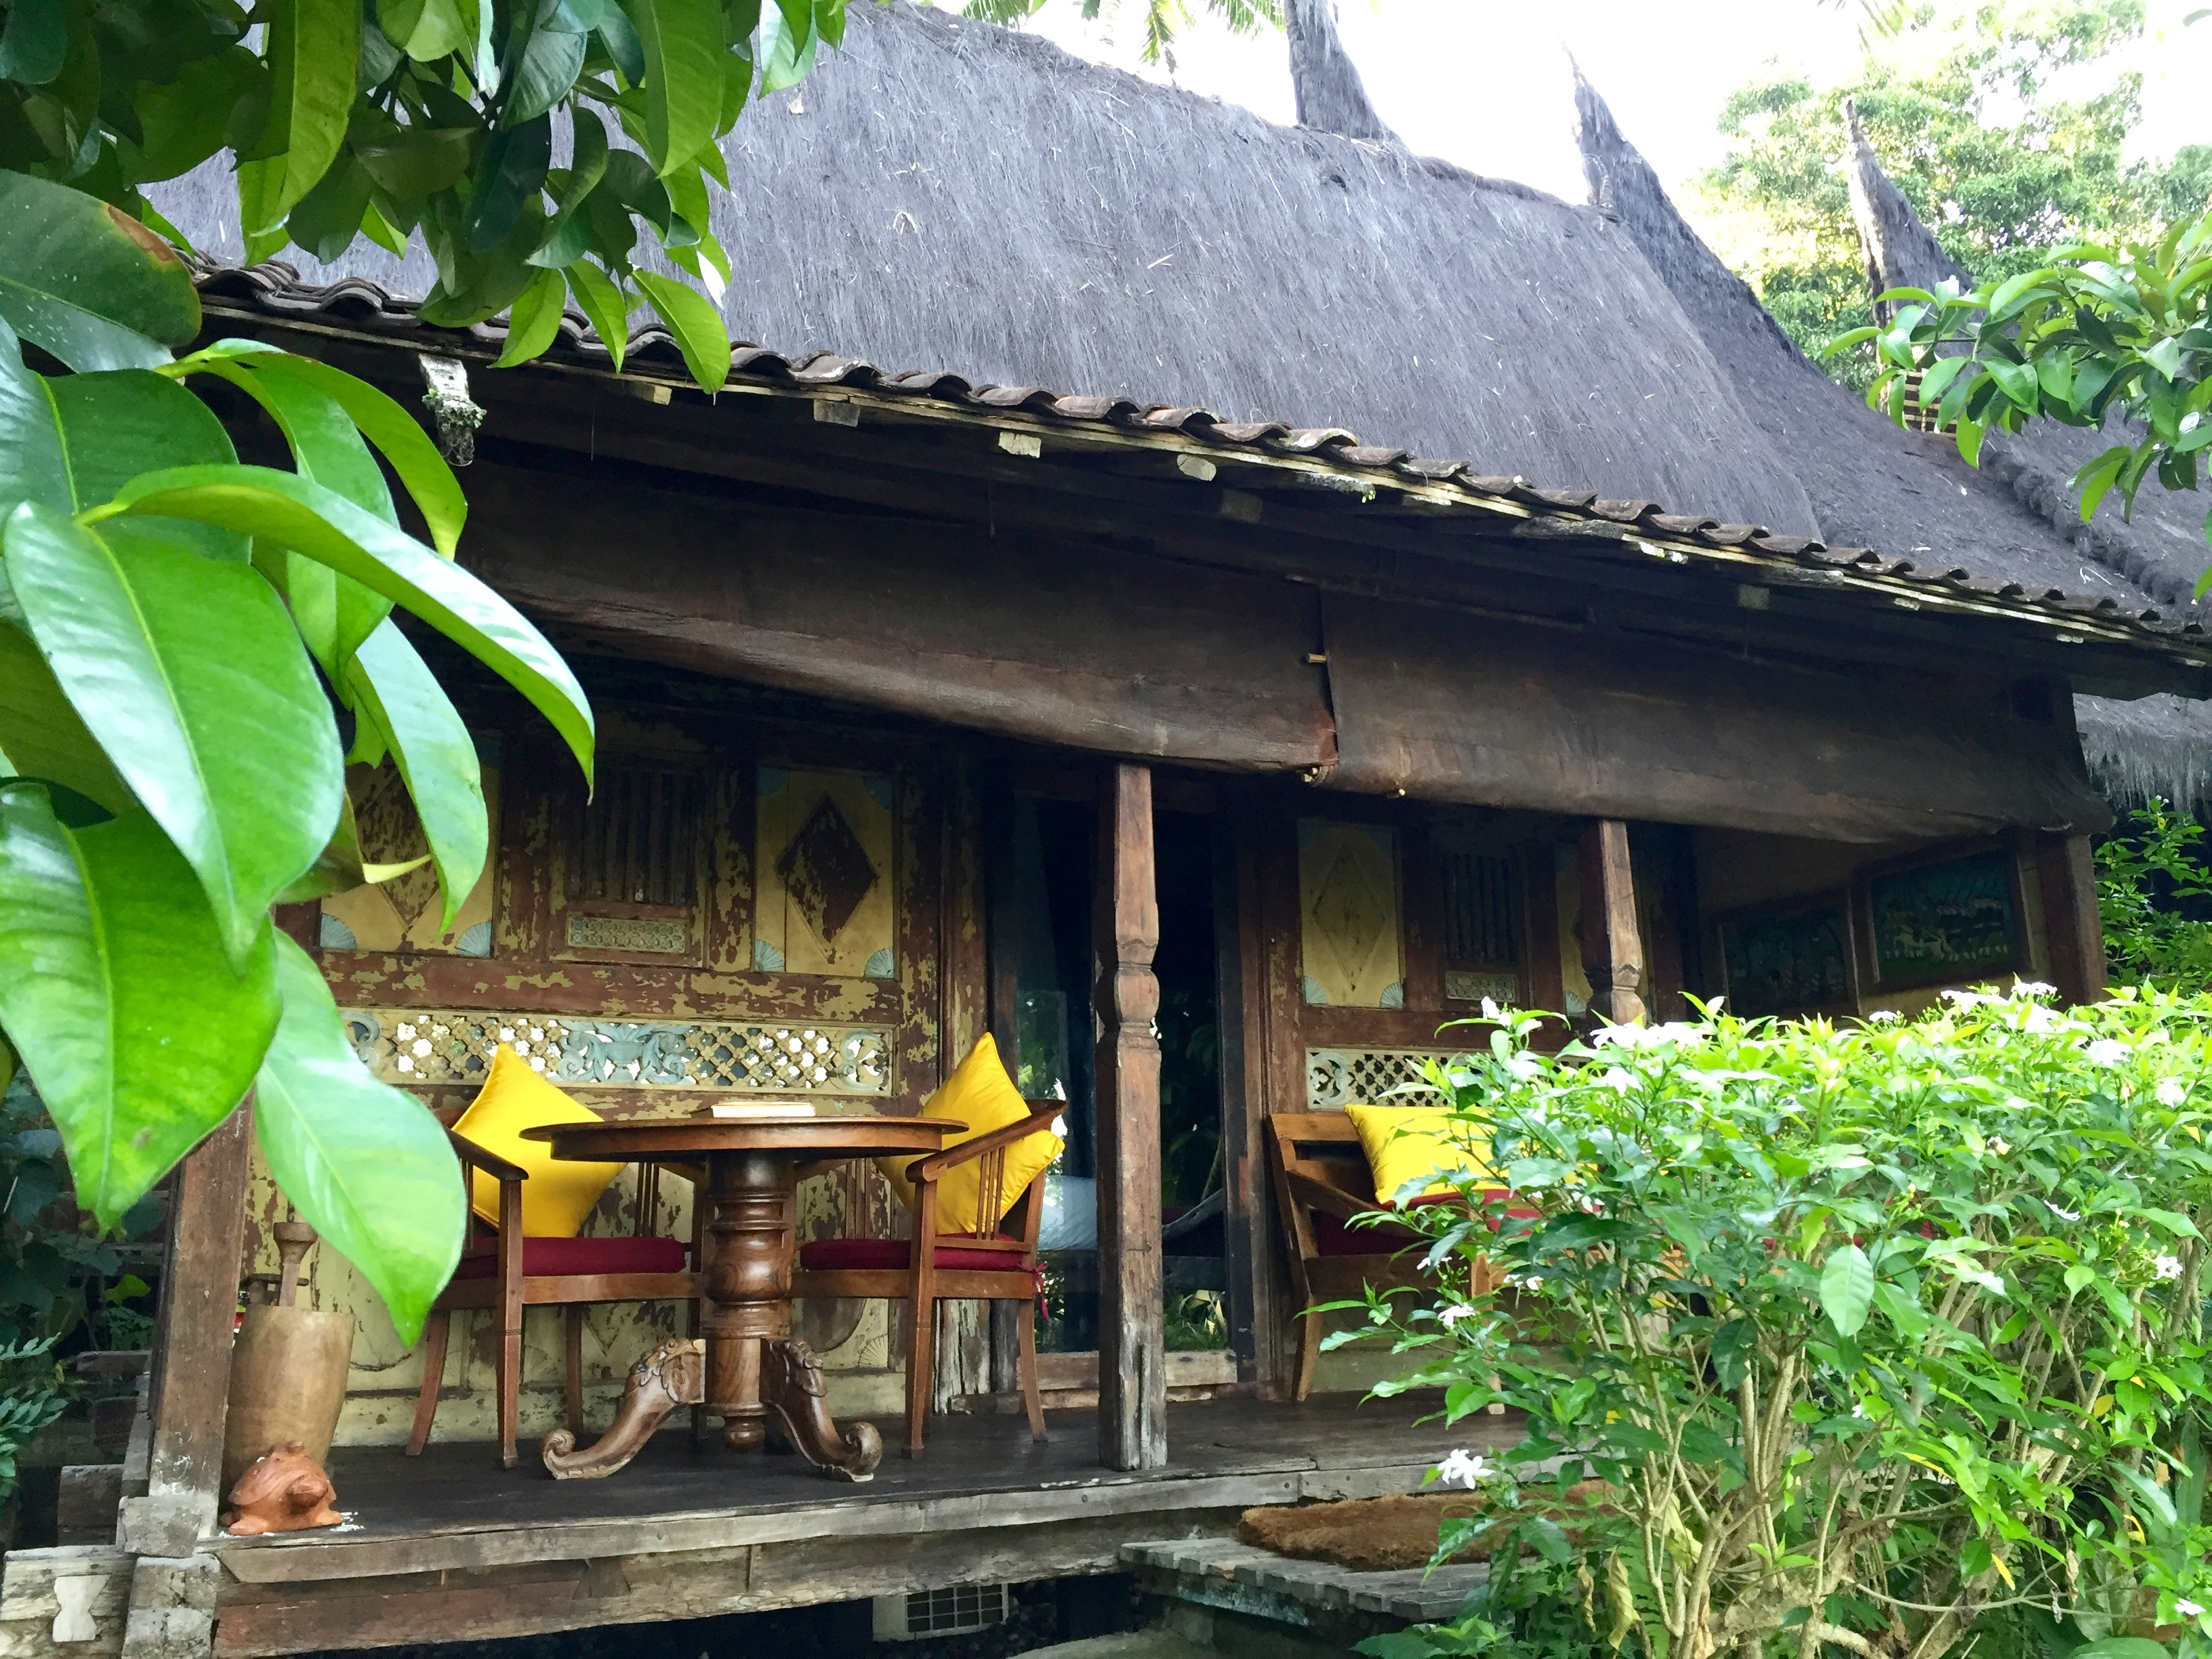 Checking Into The Bambu Indah Hotel In Ubud The Pin The Map Project